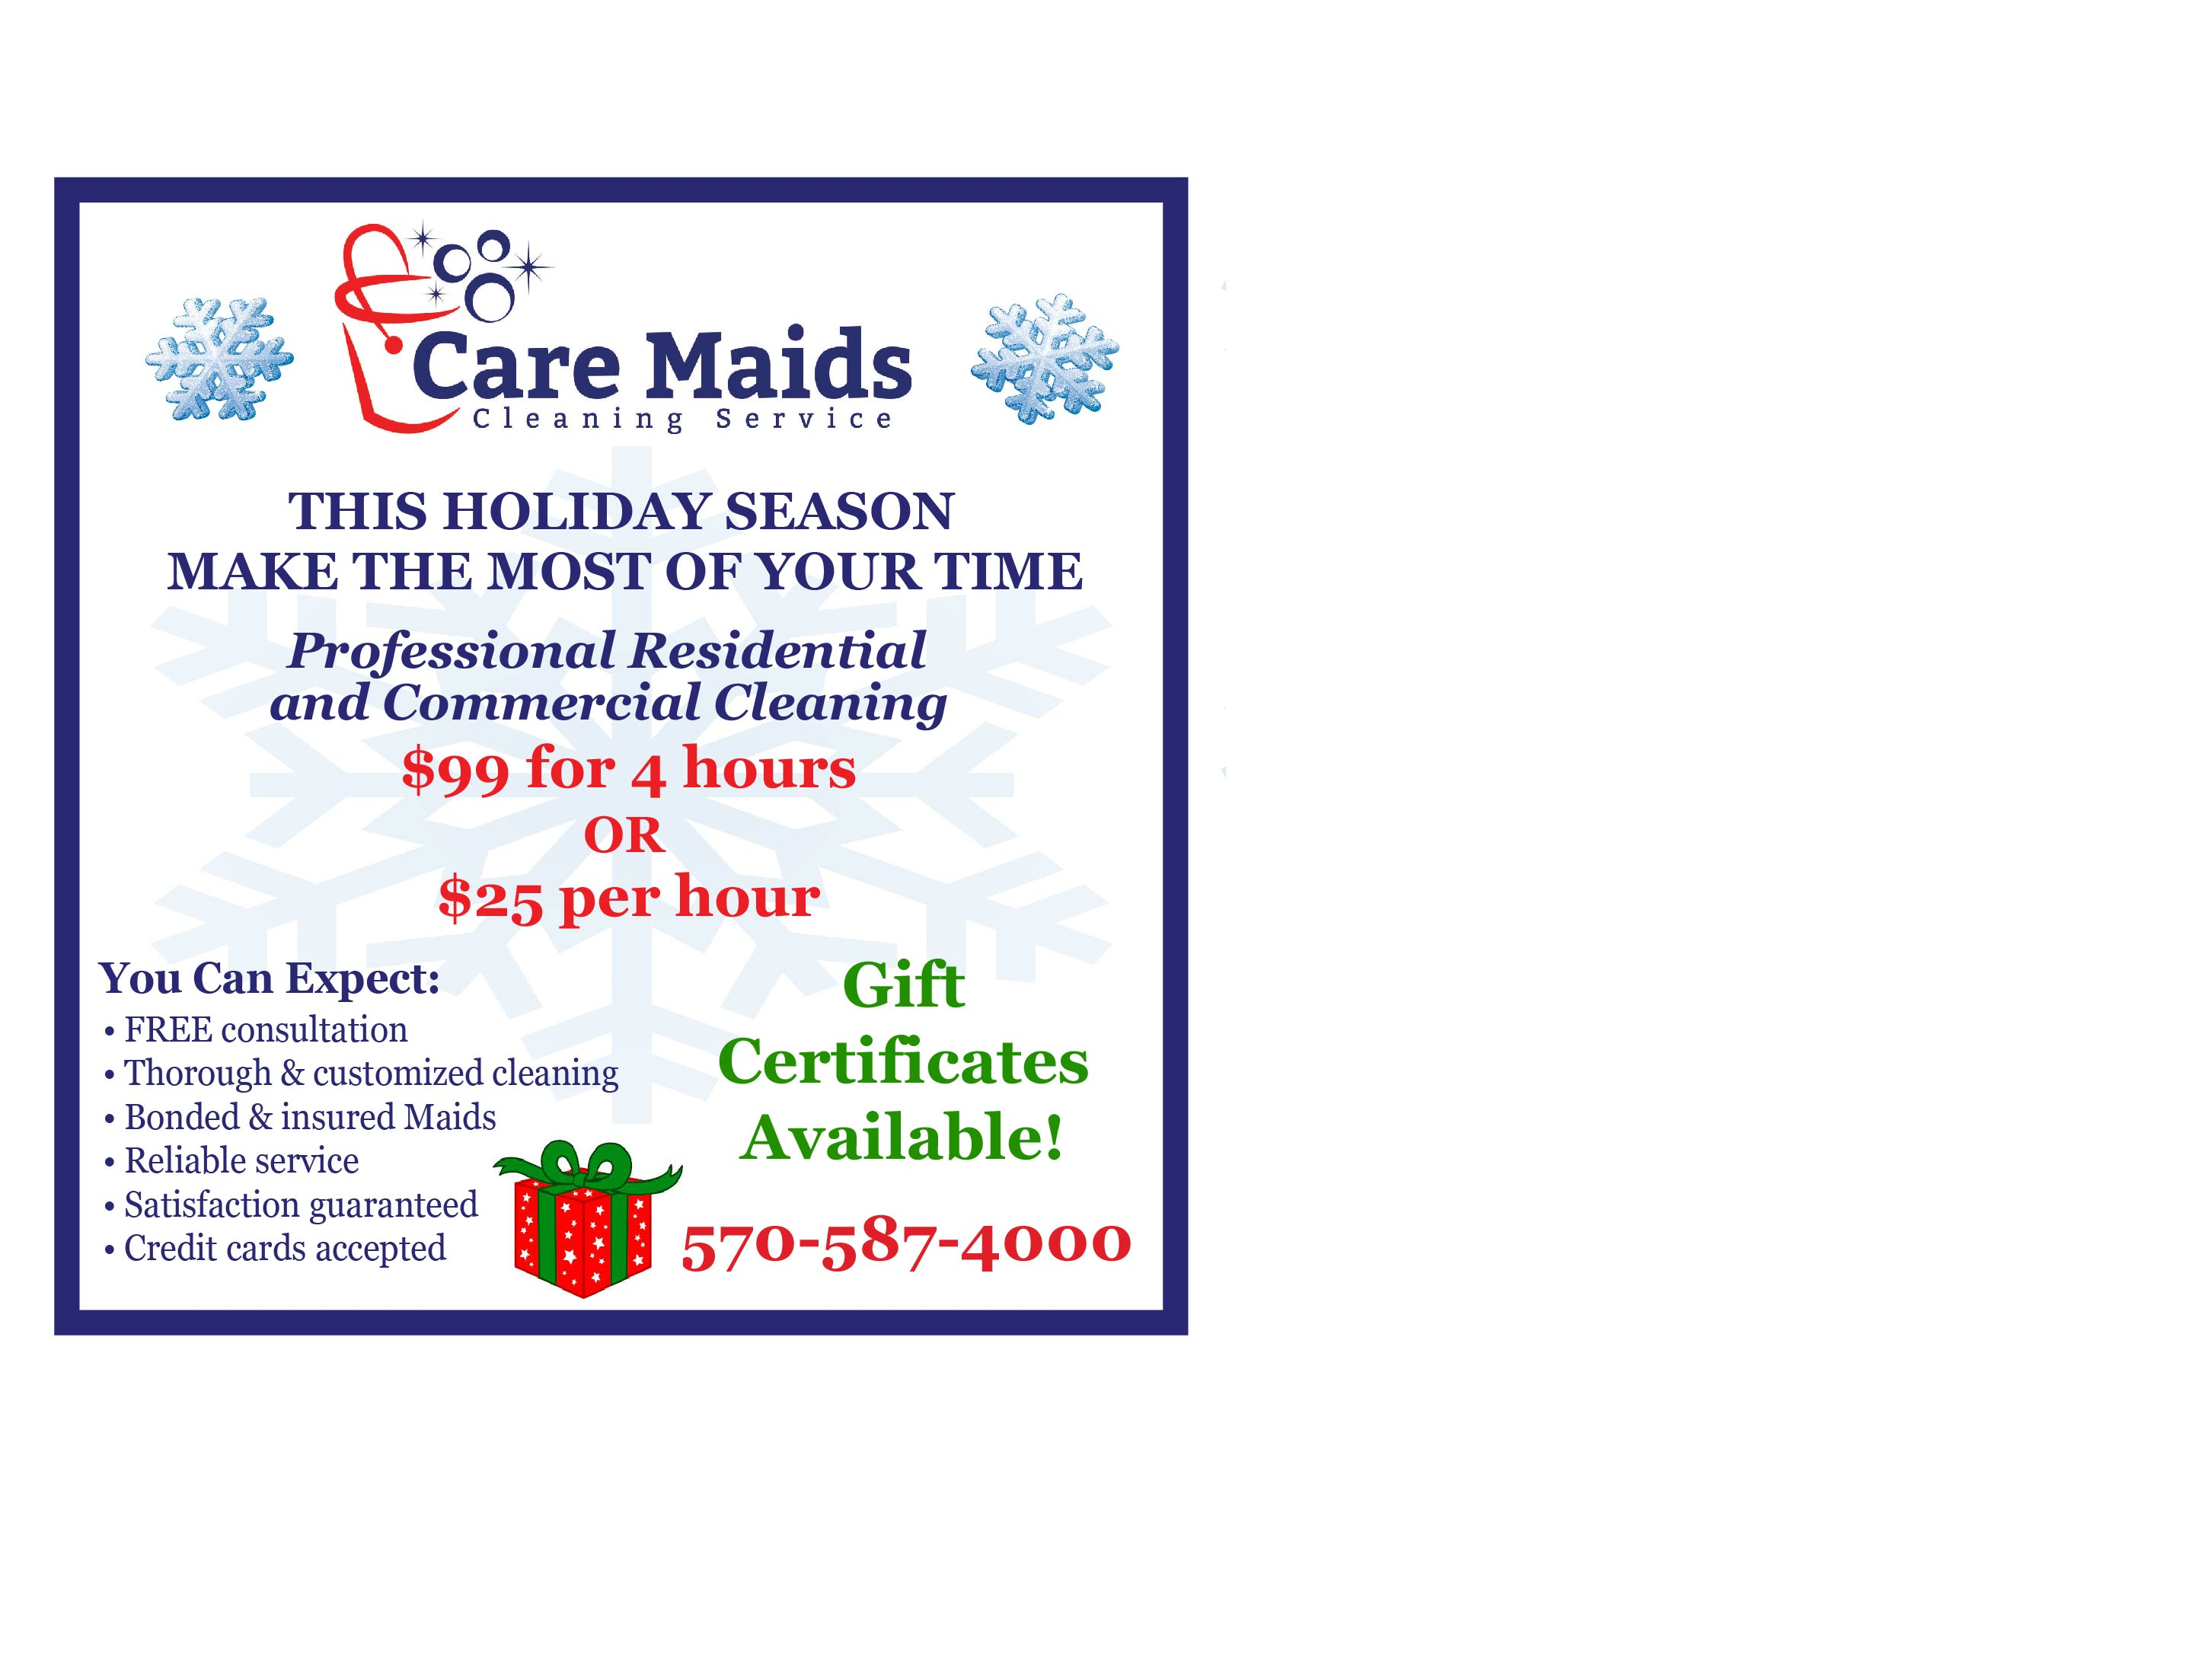 care maids cleaning service holiday rates caregivers america caremaids dec ad 2016